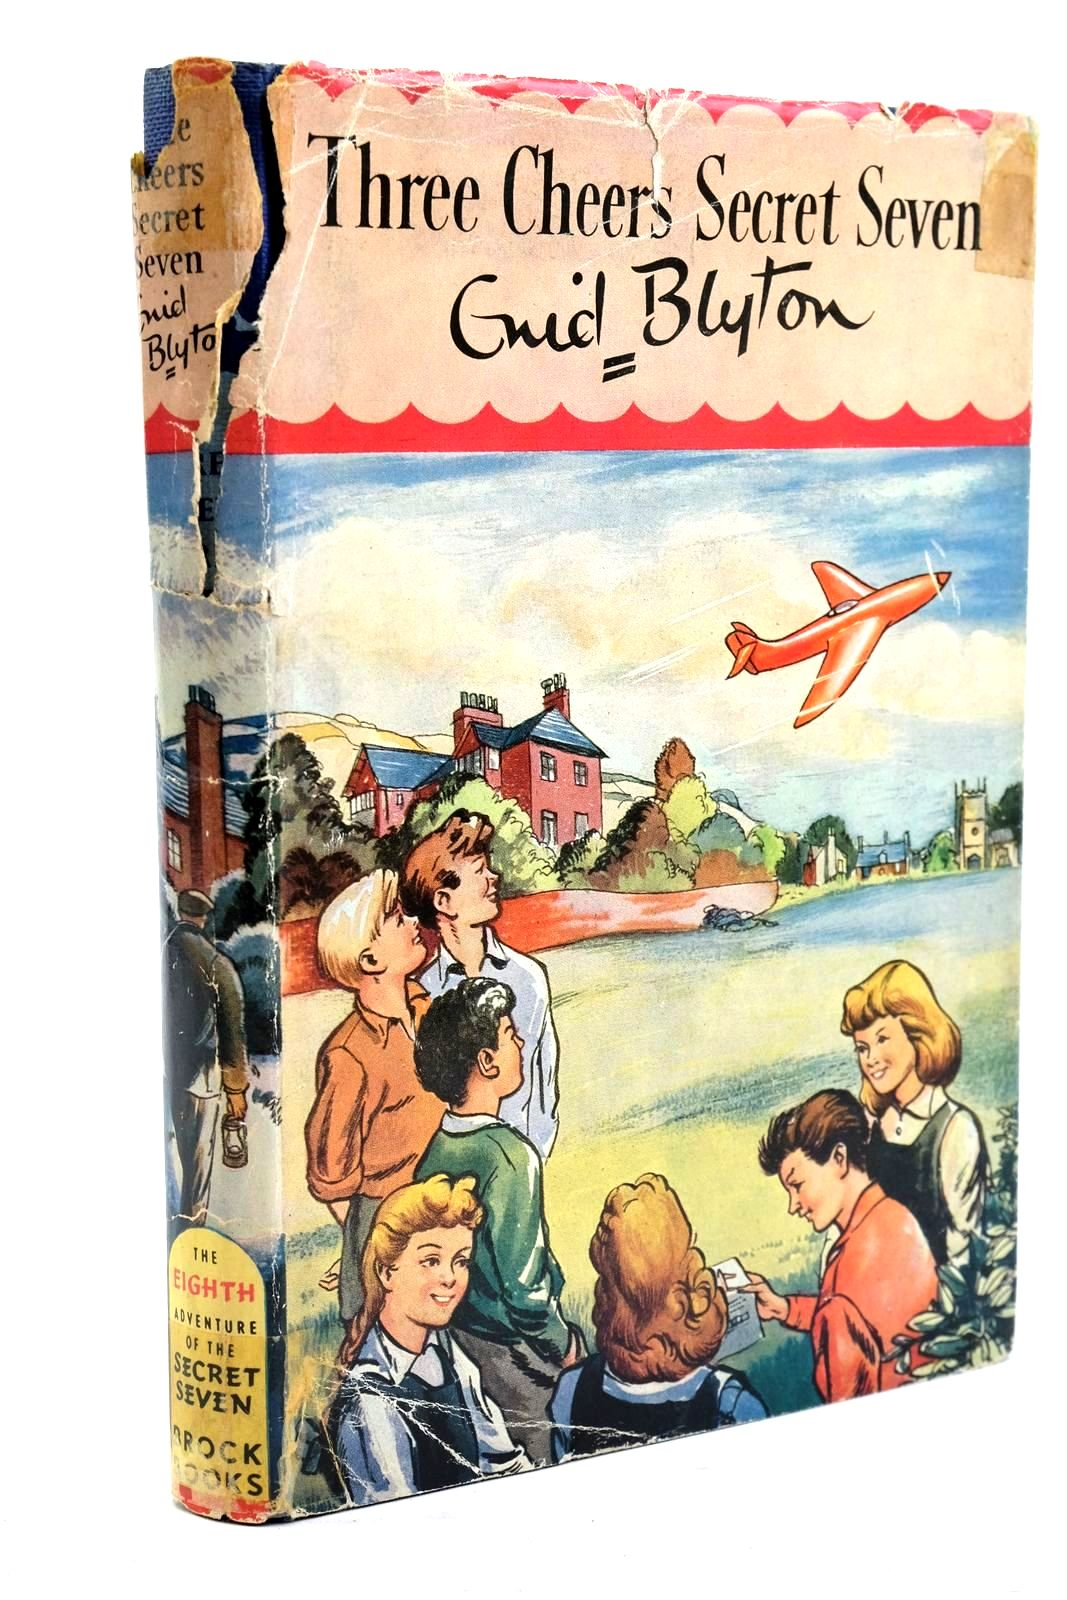 Photo of THREE CHEERS SECRET SEVEN written by Blyton, Enid illustrated by Sharrocks, Burgess published by Brockhampton Press Ltd. (STOCK CODE: 1320708)  for sale by Stella & Rose's Books